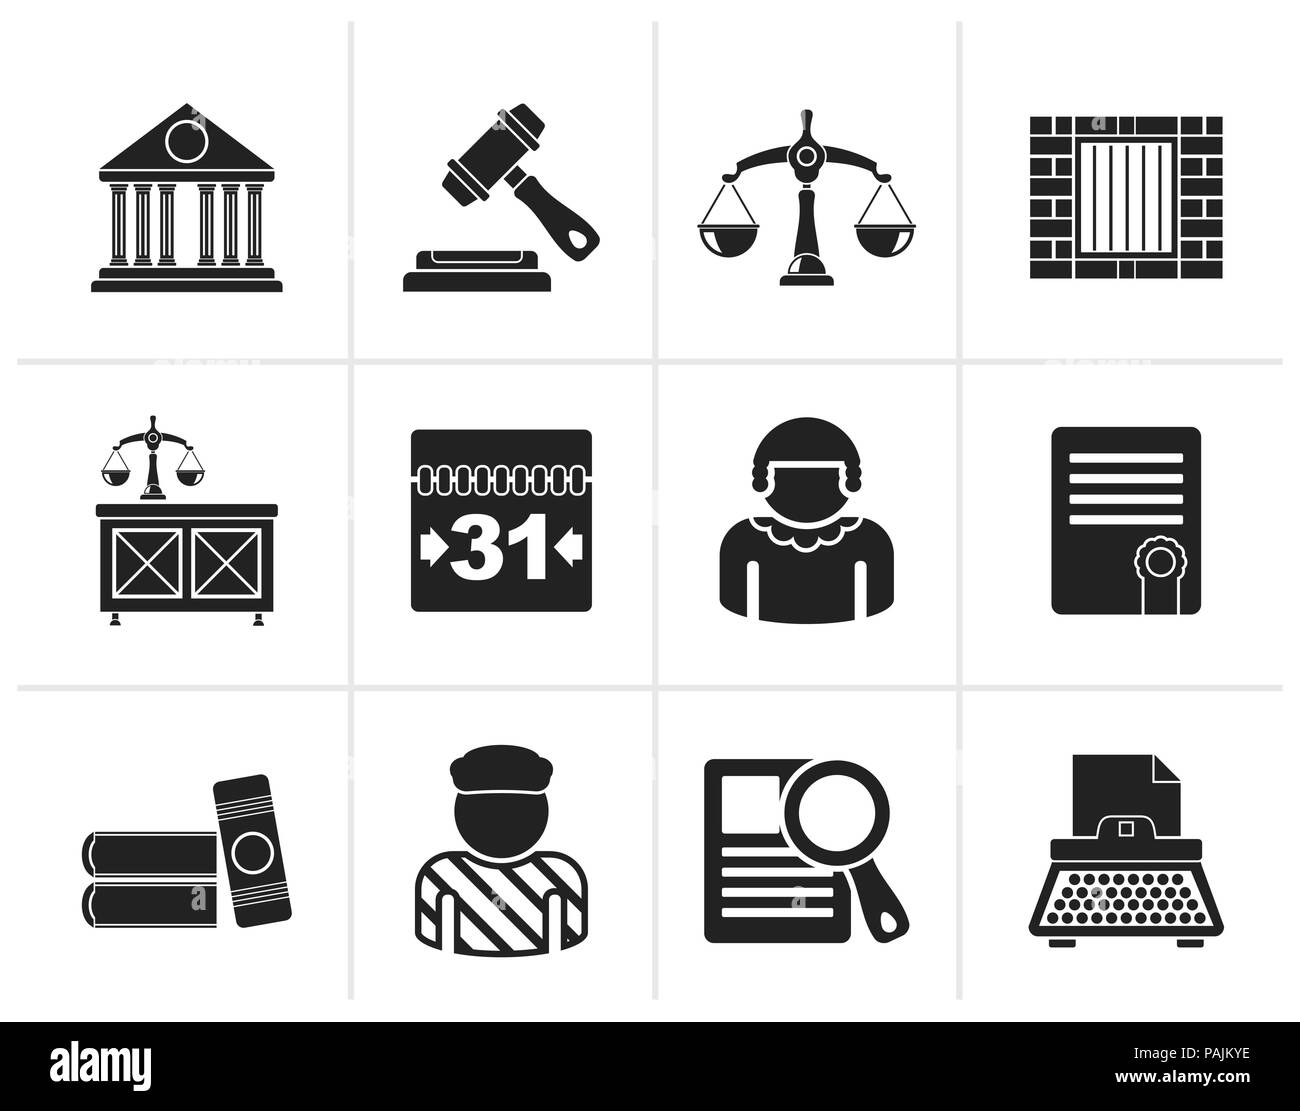 Black Justice and Judicial System icons - vector icon set - Stock Image